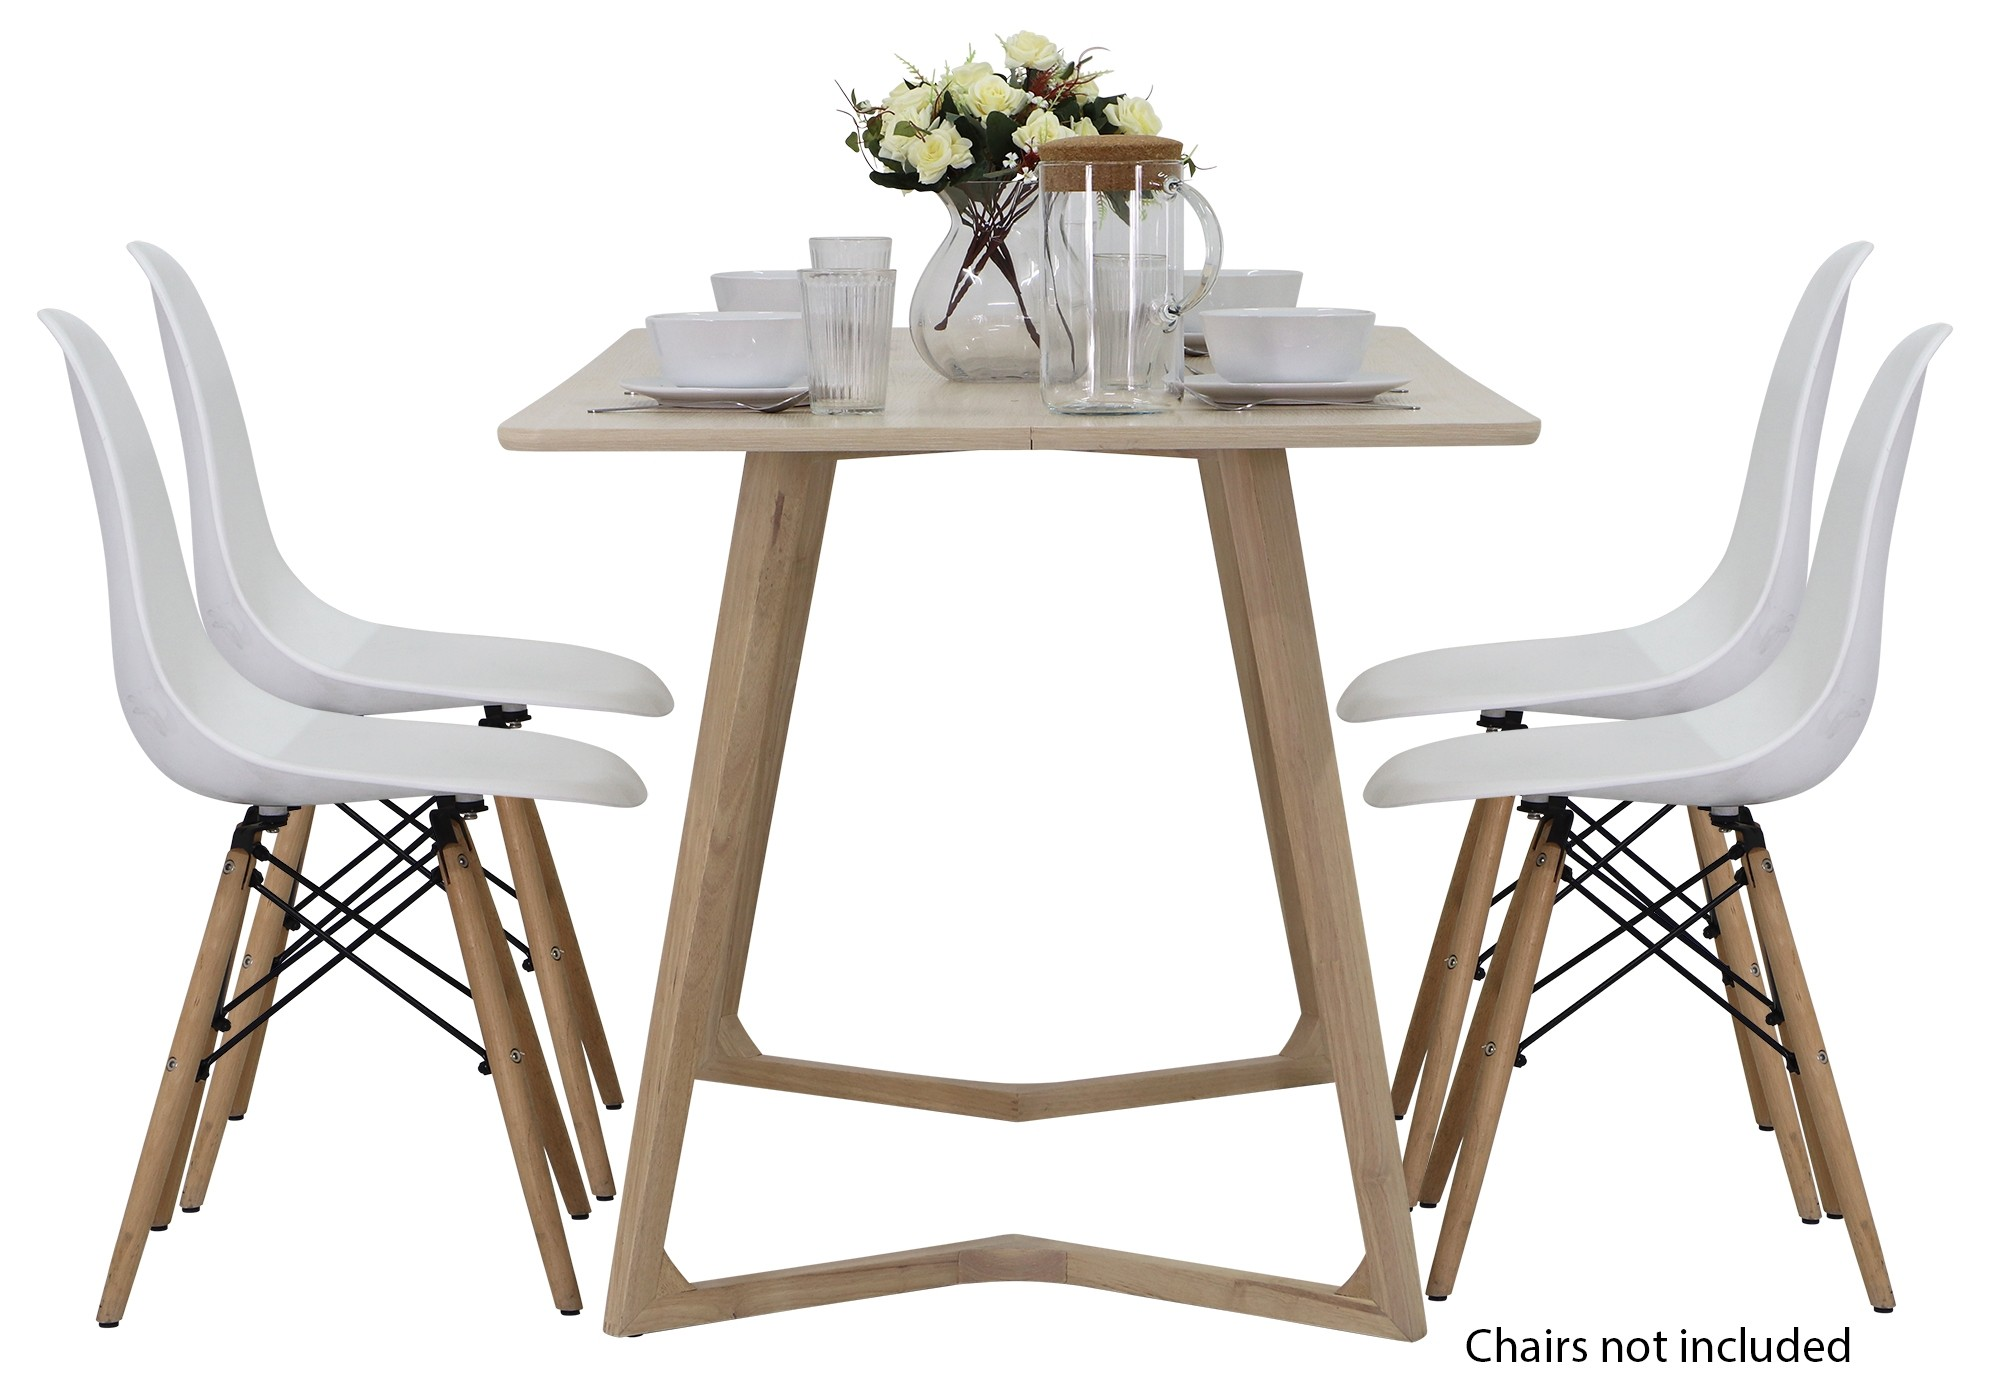 Weller designer wooden dining table oak regular price s389 00